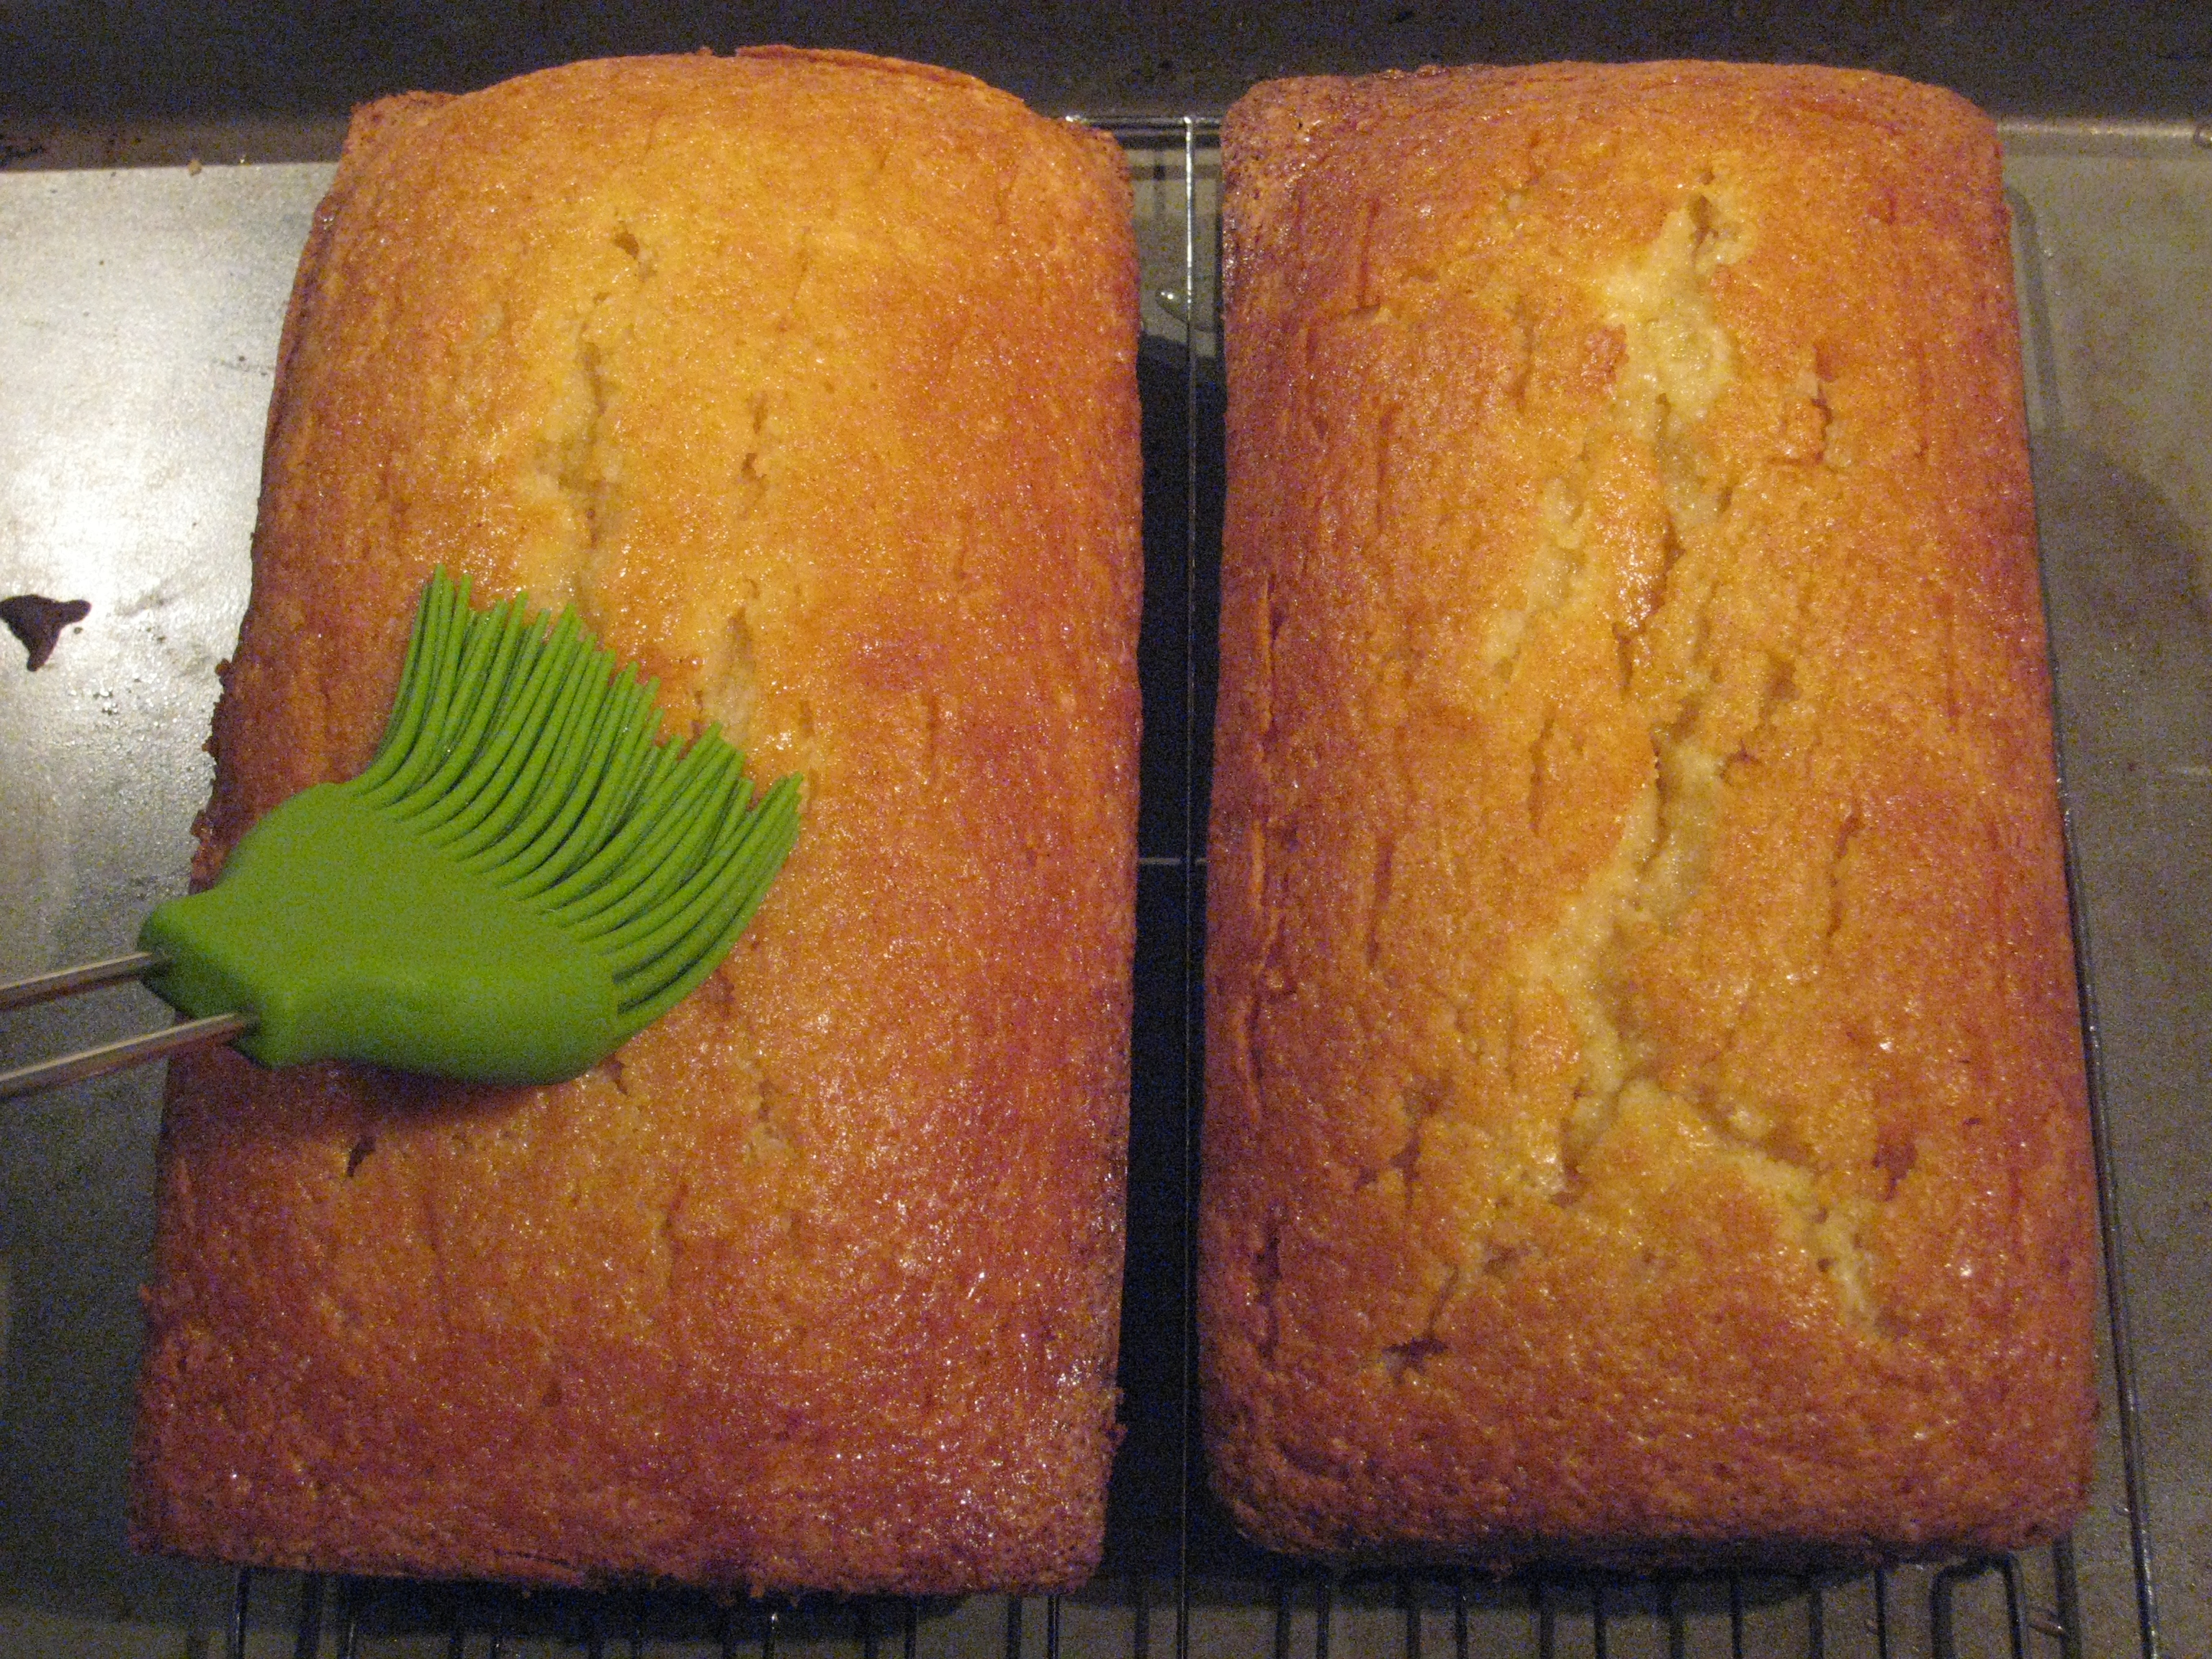 Everybody Who Has Tried This Moist Vanilla Rum Cake Has Loved It I Keep Meaning To Freeze One Loaf For Later But I Like To Give The People What They Want